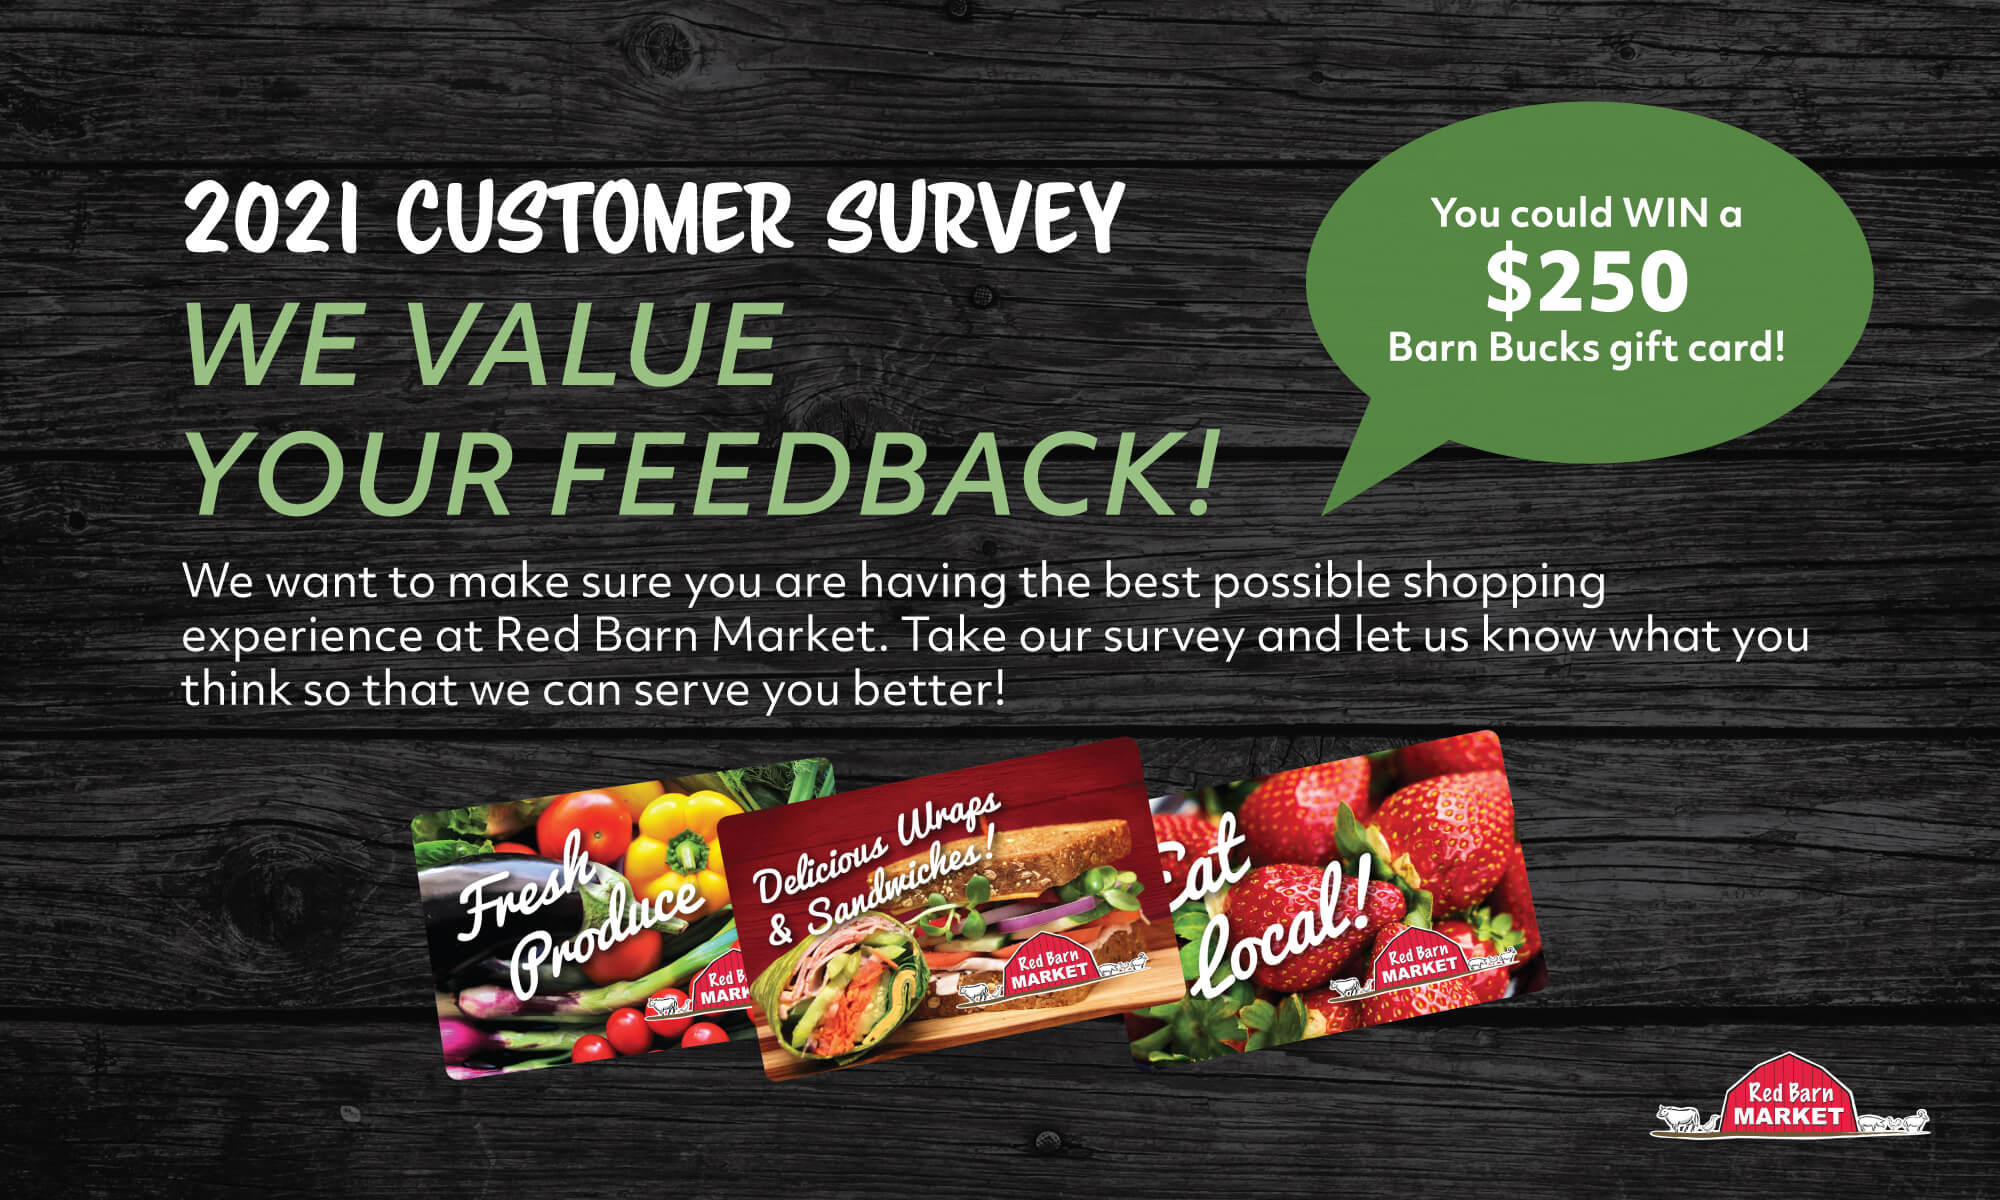 2021 Customer Survey 📣 We want to hear from you! ✨ Take our Customer Feedback Survey and you could win a $250 Barn Bucks card.<br /> Red Barn Market strives to offer the best grocery shopping experience possible for our customers and we cannot do that without your input.